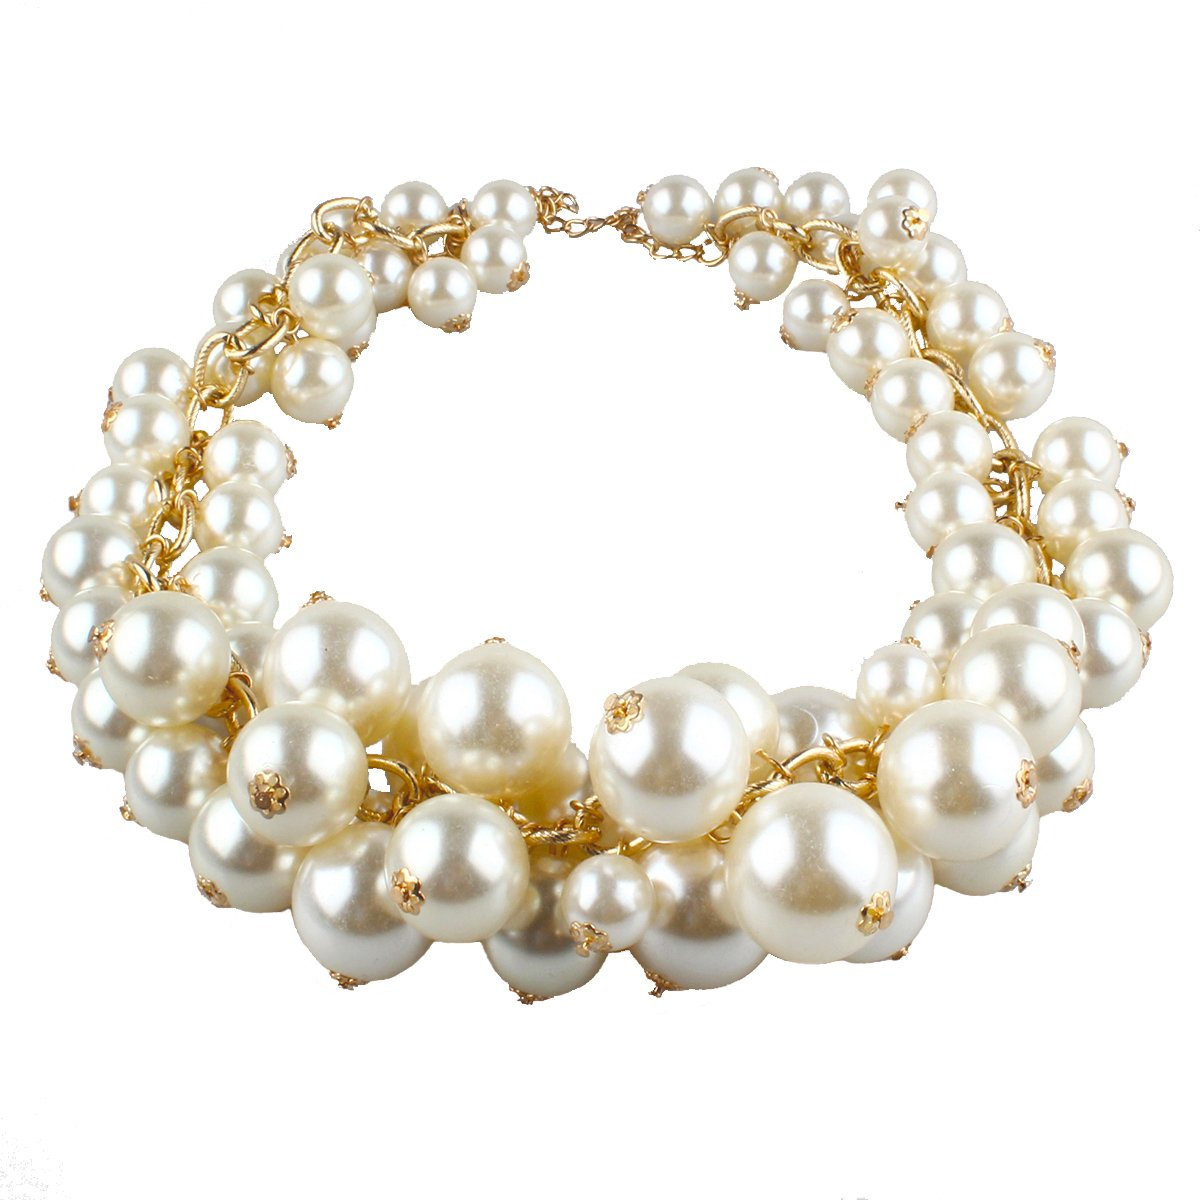 MeliMe Womens Imitation Pearl Twisty Chunky Bib Necklace Chokers for Wedding Party (Style 04)